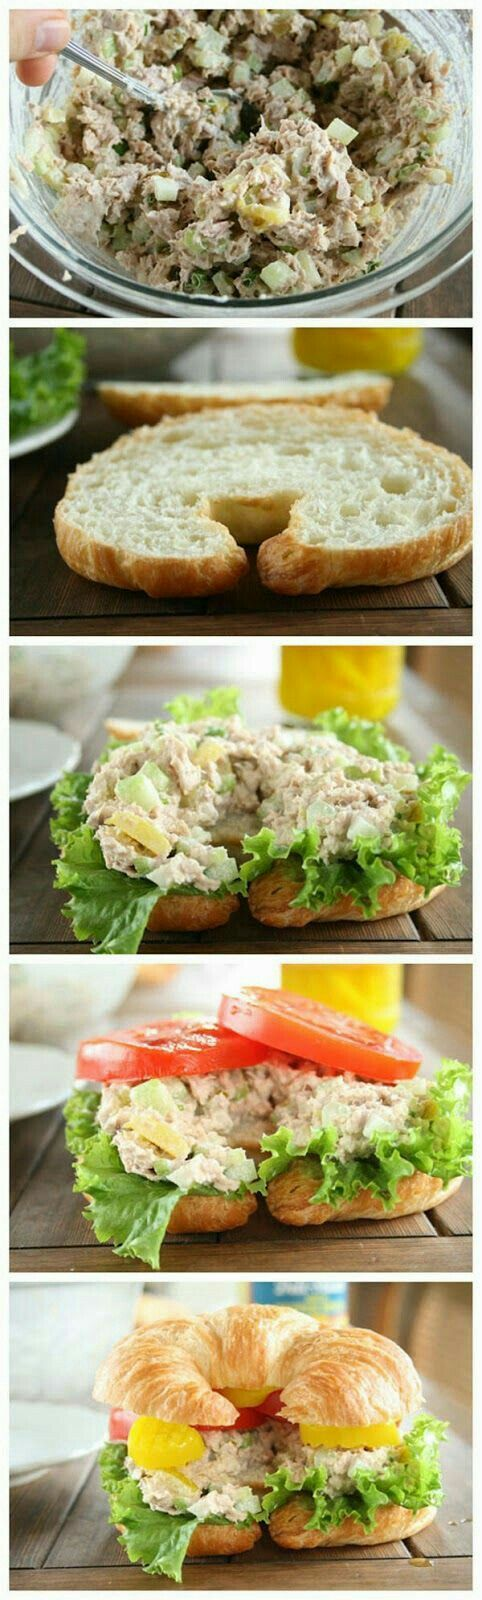 23 best bulletin board ideas images on pinterest school for Recipes for tuna fish